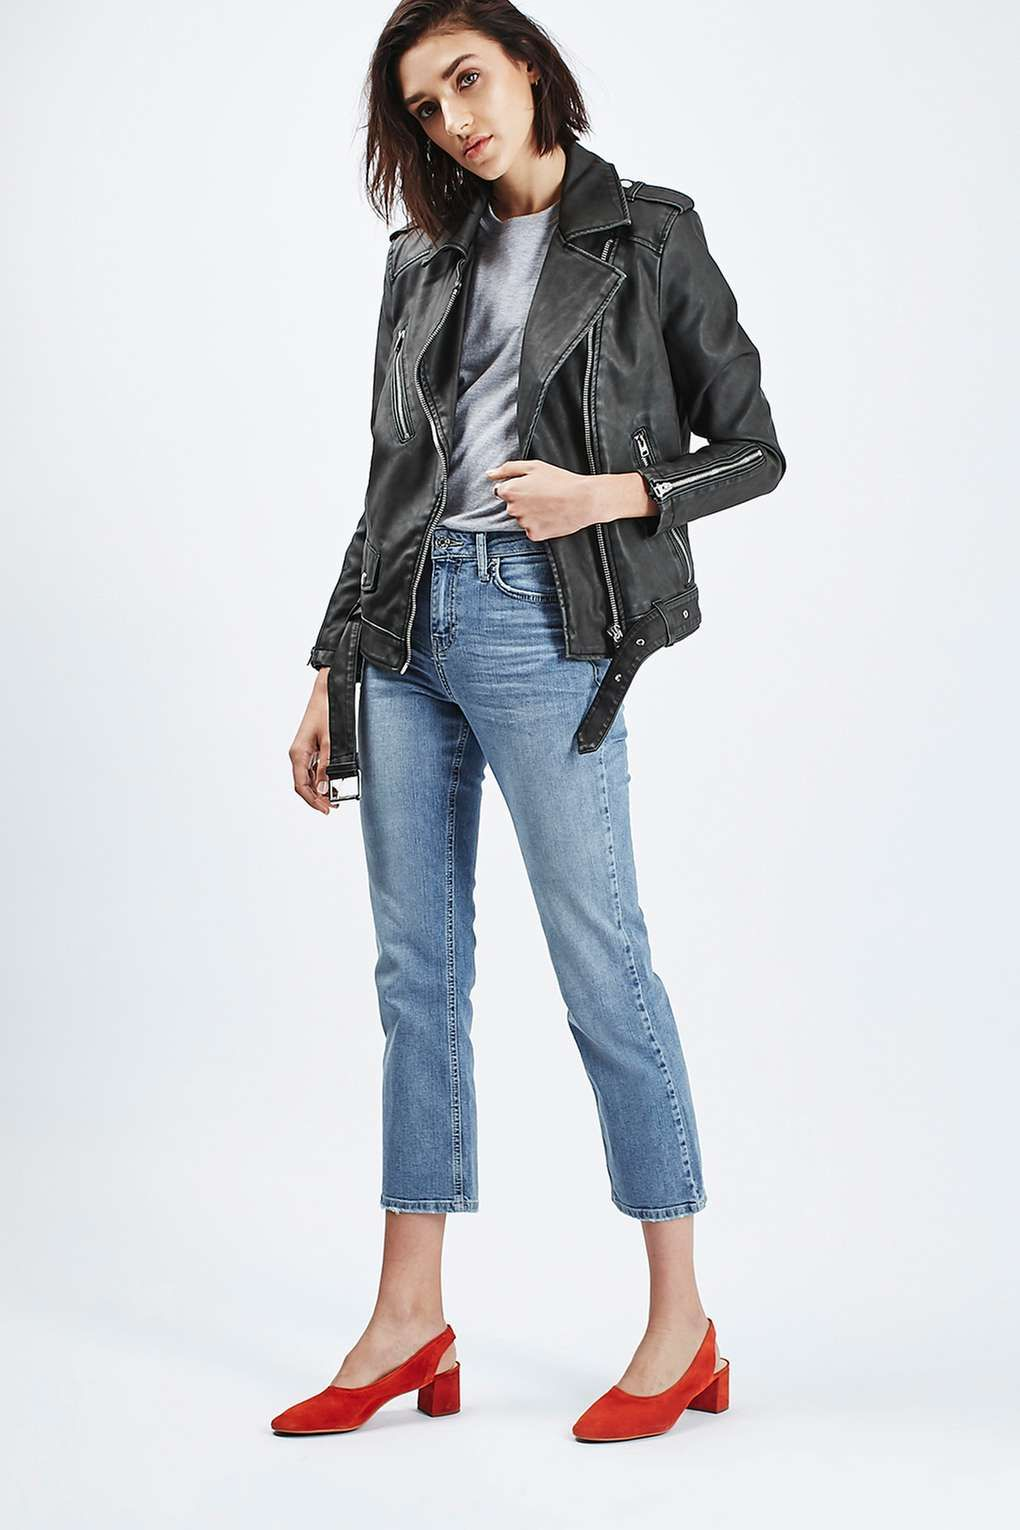 Kick Flare Jeans with Leather Jacket